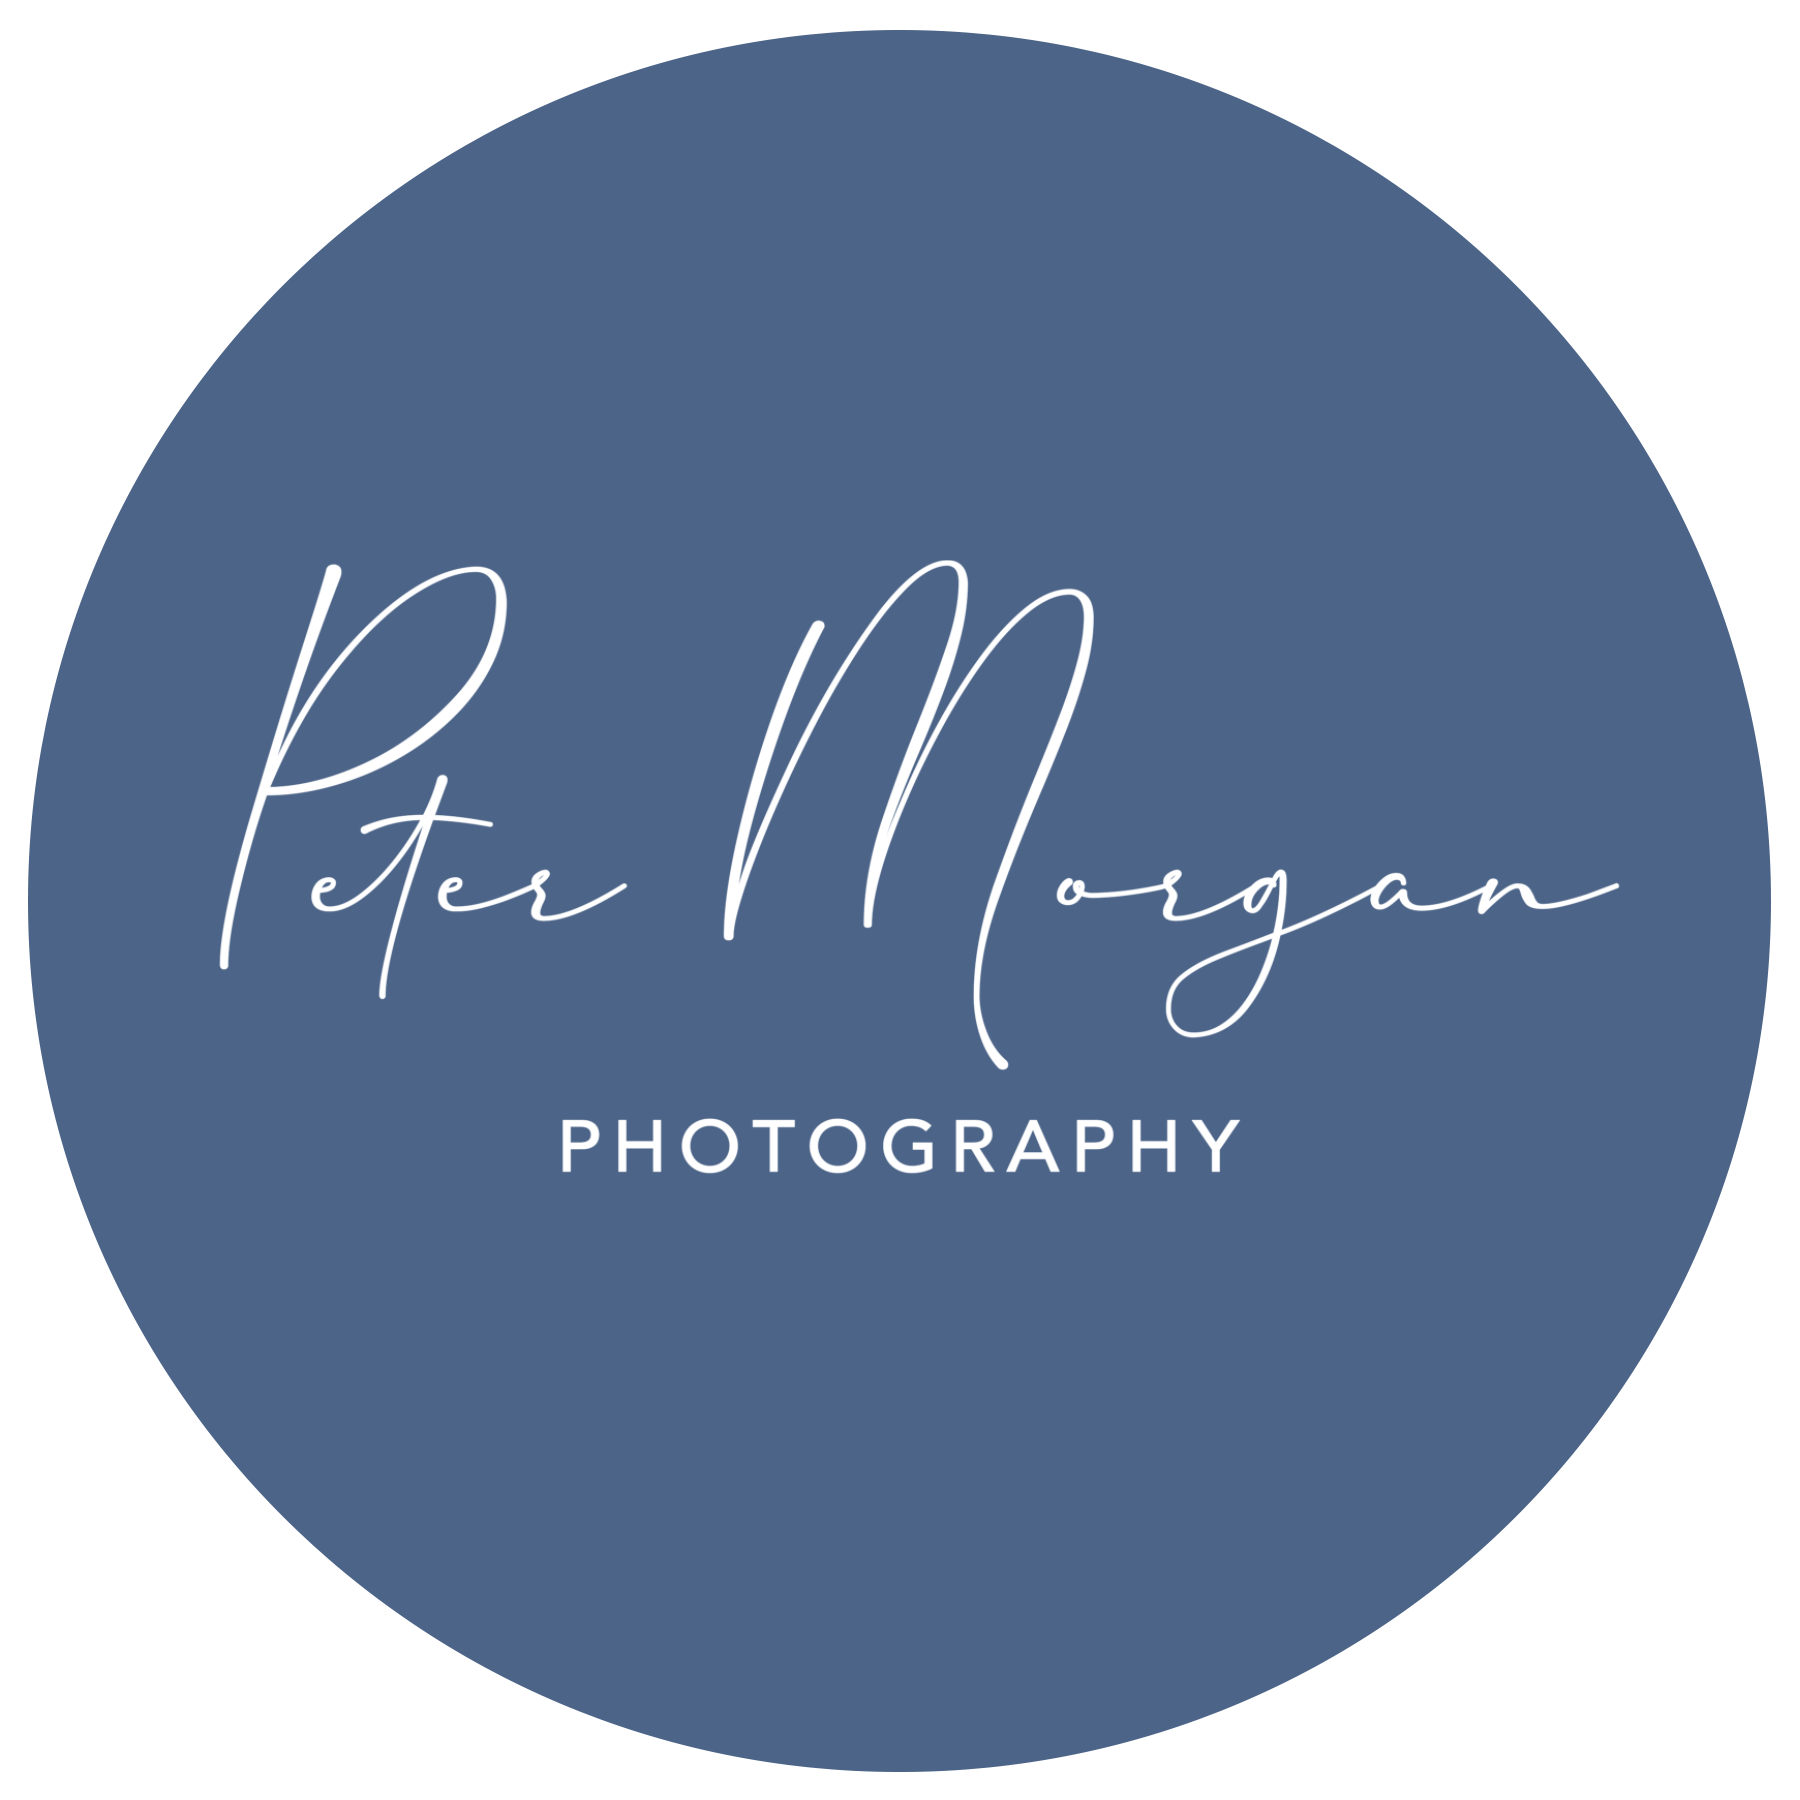 Peter Morgan Photography